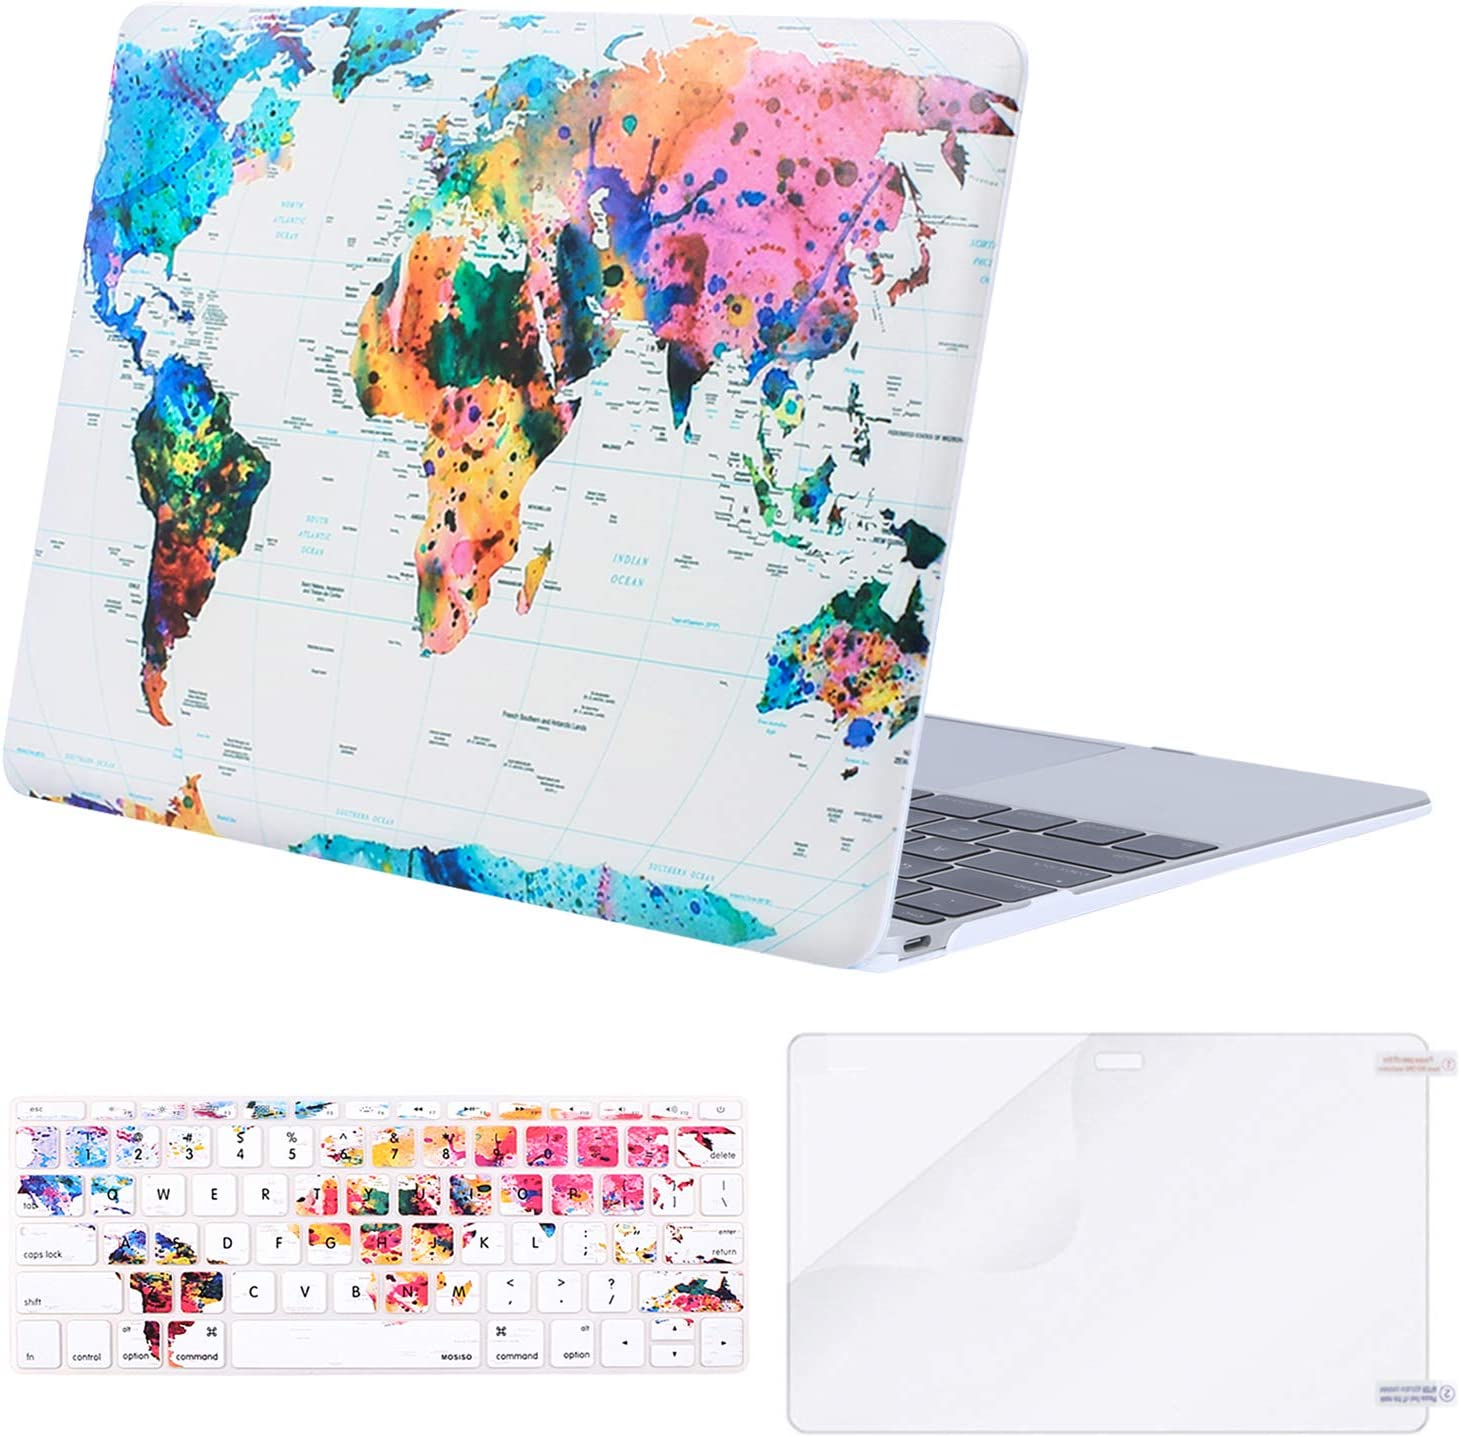 MOSISO MacBook 12 inch Case (Model A1534, Release 2017 2016 2015), Plastic Pattern Hard Shell Case & Keyboard Cover & Screen Protector Compatible with MacBook 12 inch with Retina Display, World Map